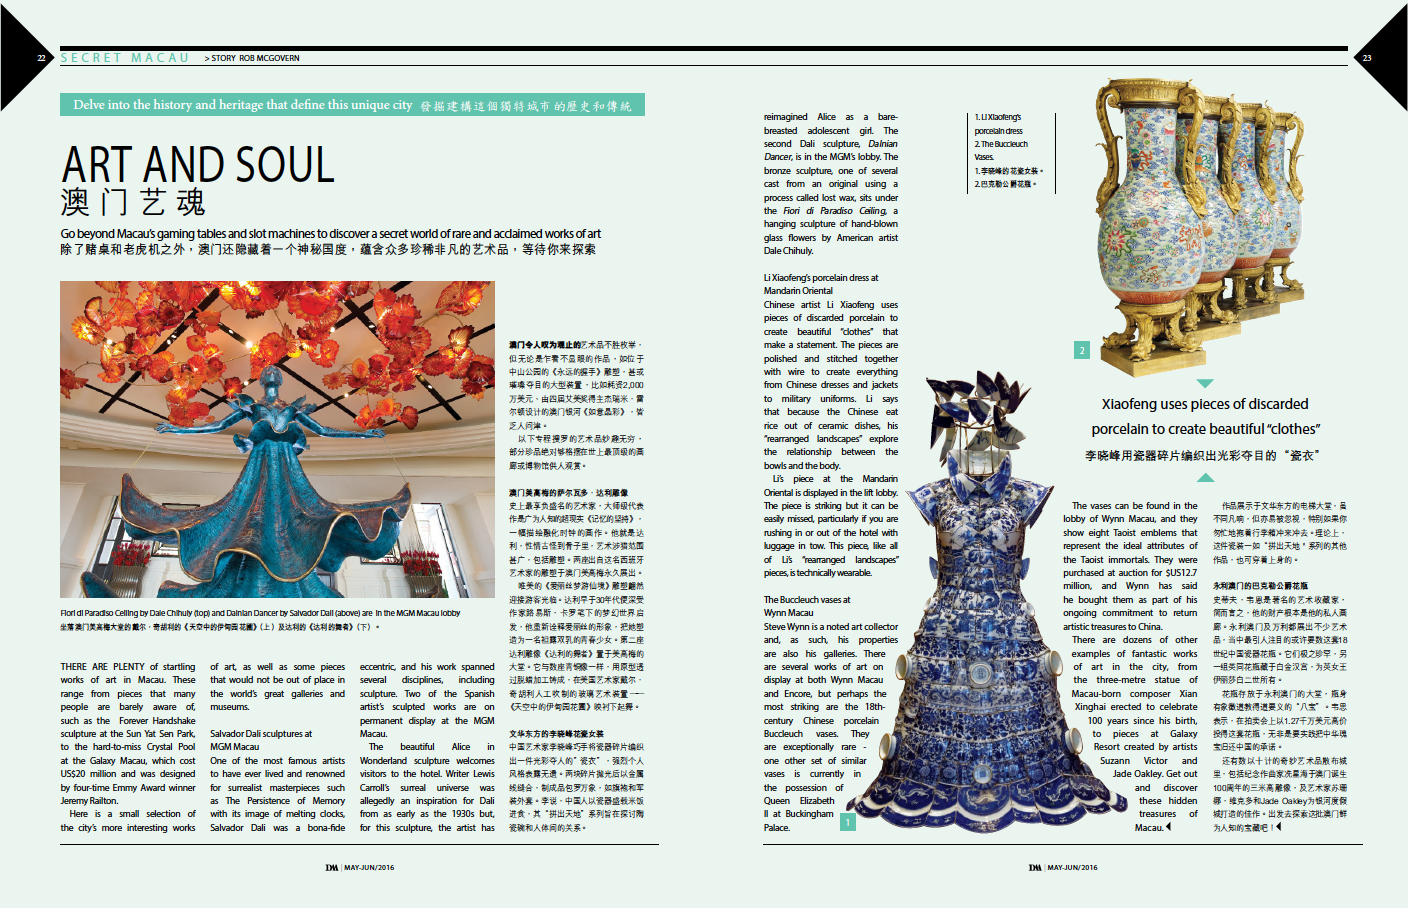 Secret Macau: Art and Soul